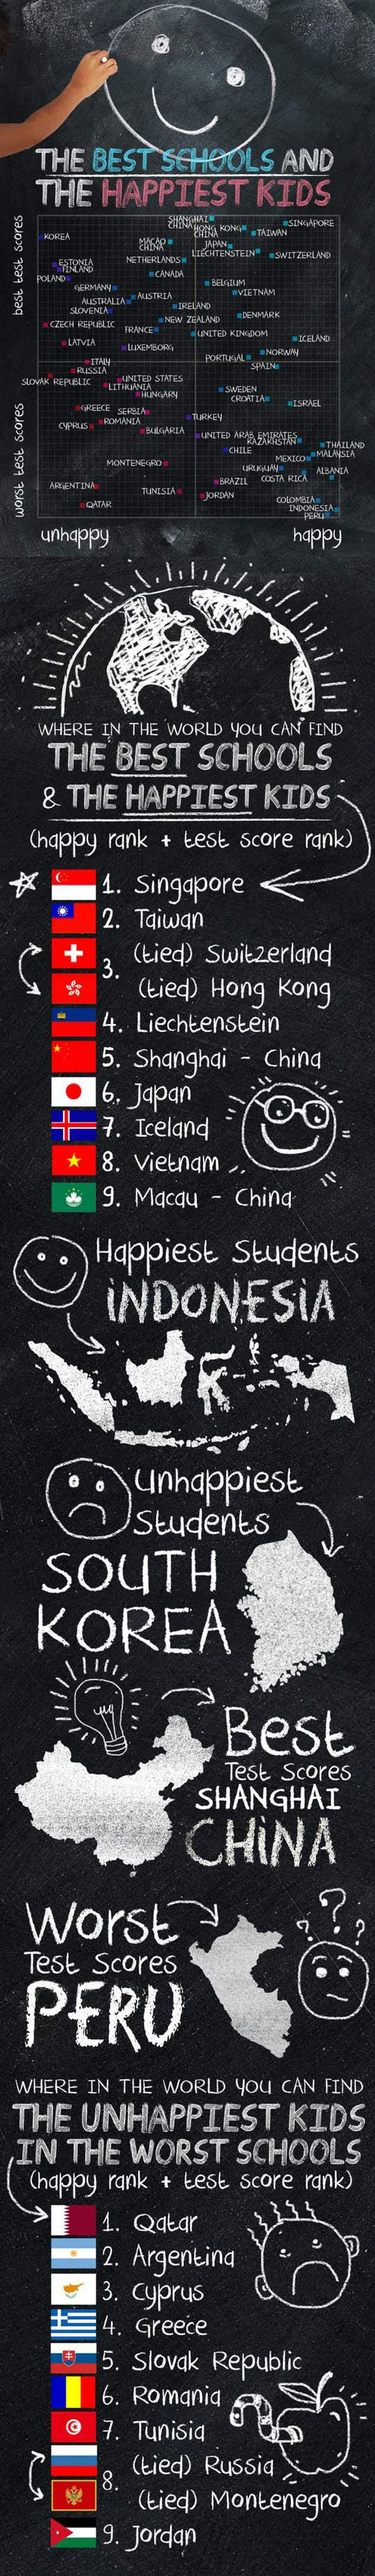 The Best Schools And The Happiest Kids